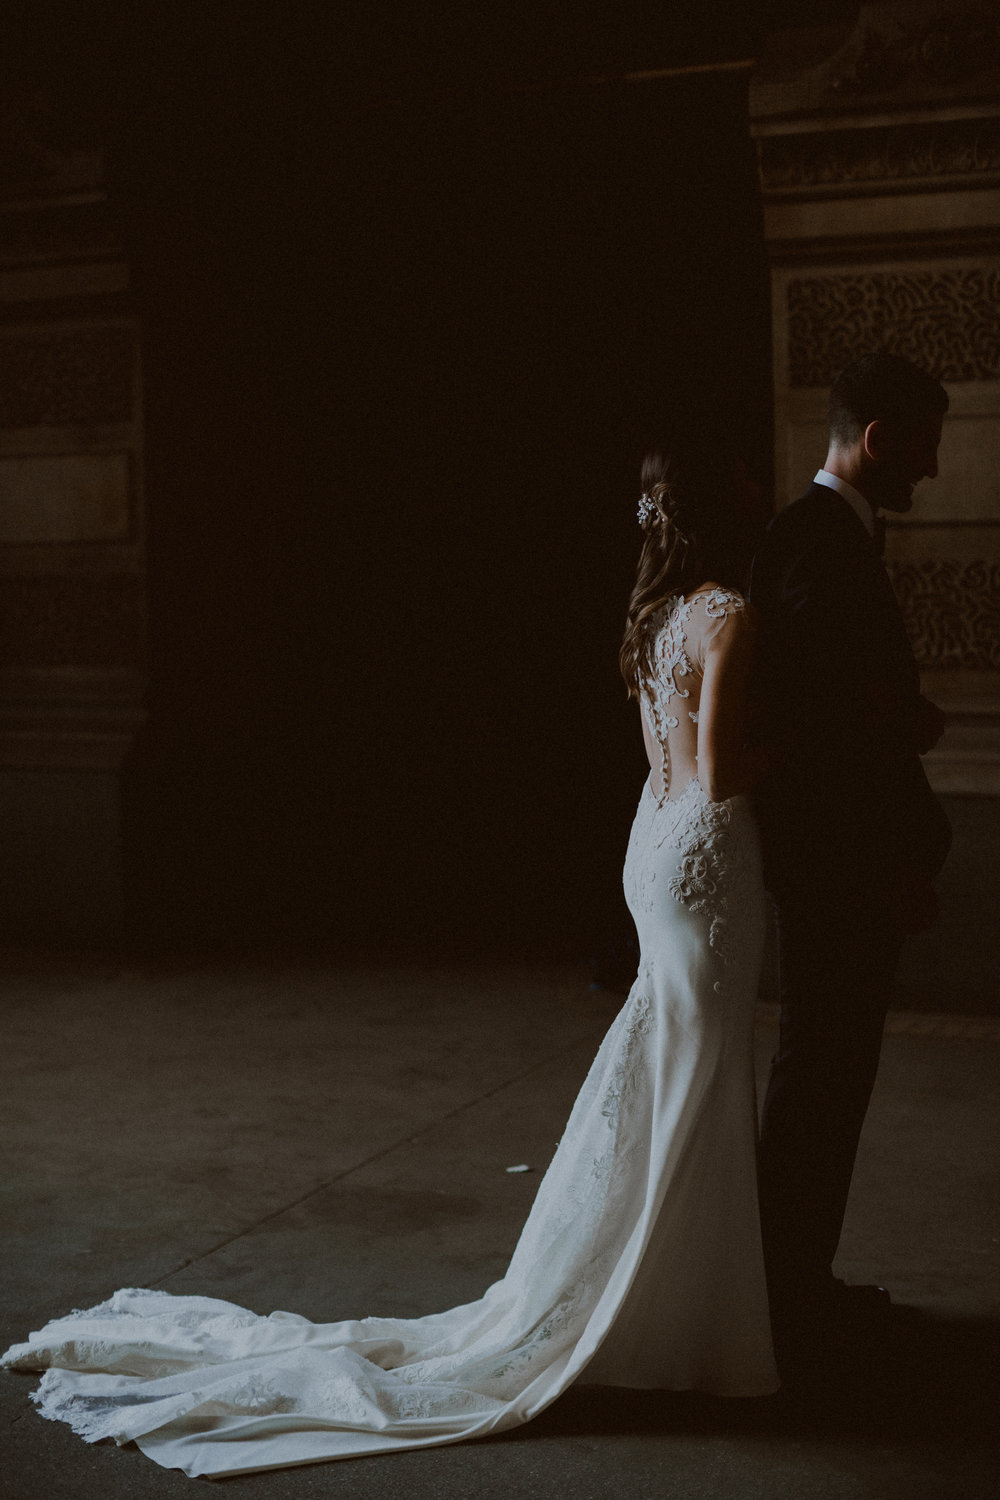 philadelphiawedding-178.jpg